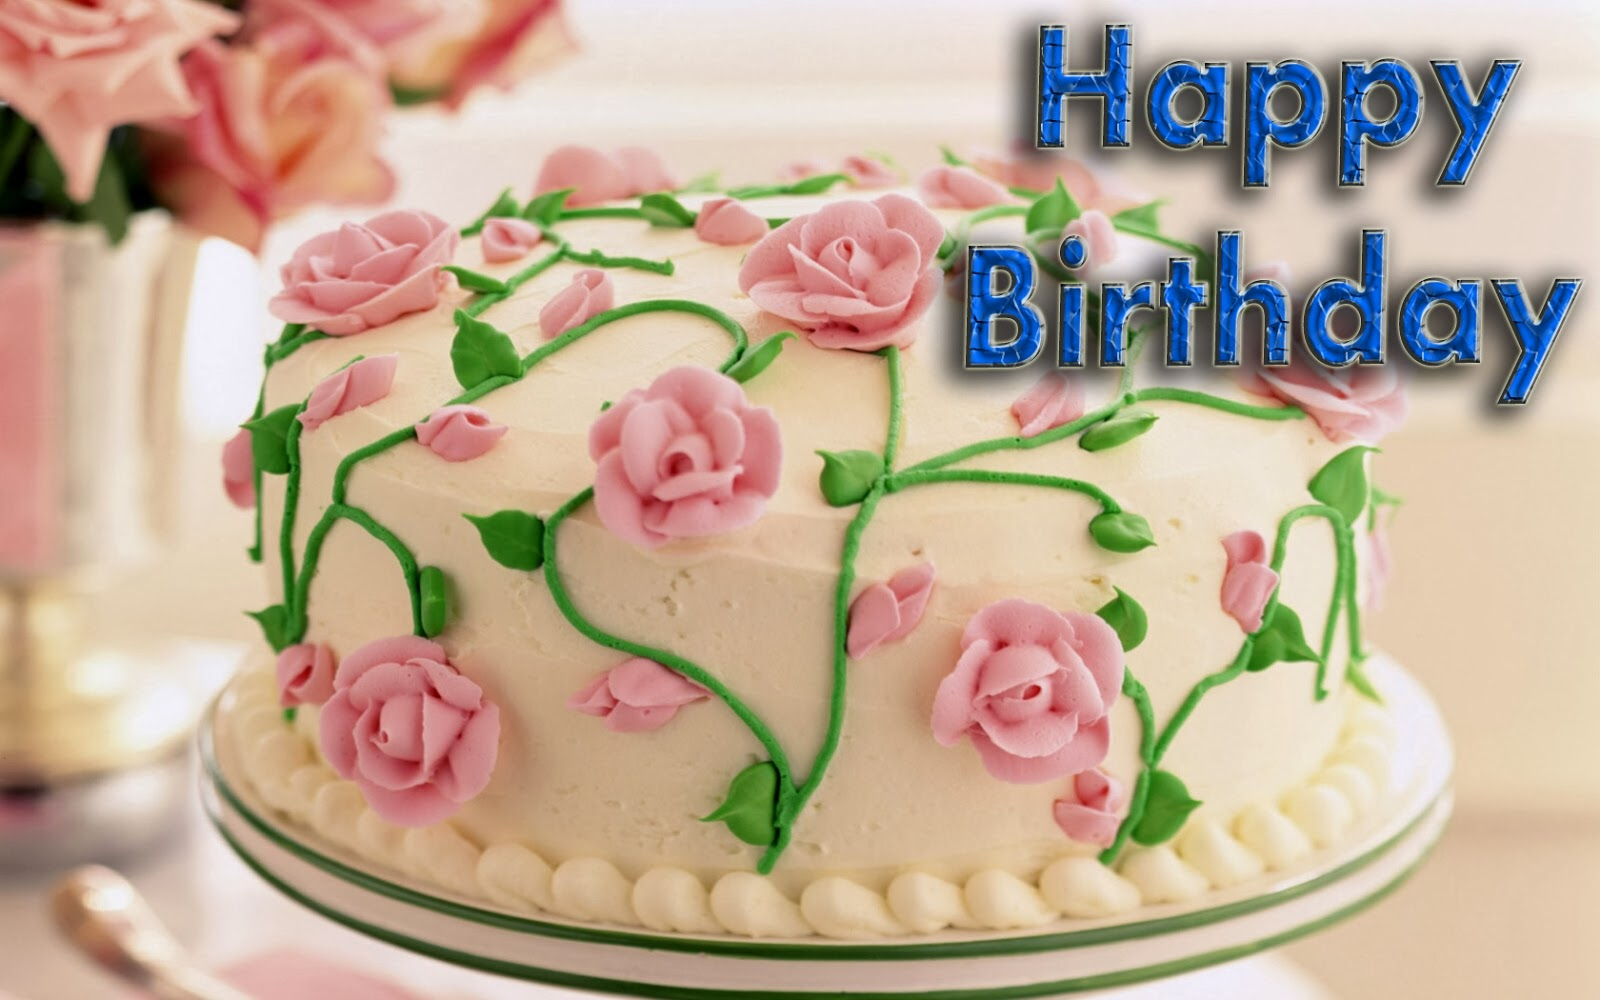 Special Cake Images Download : Lovable Images: Happy Birthday Greetings free download ...